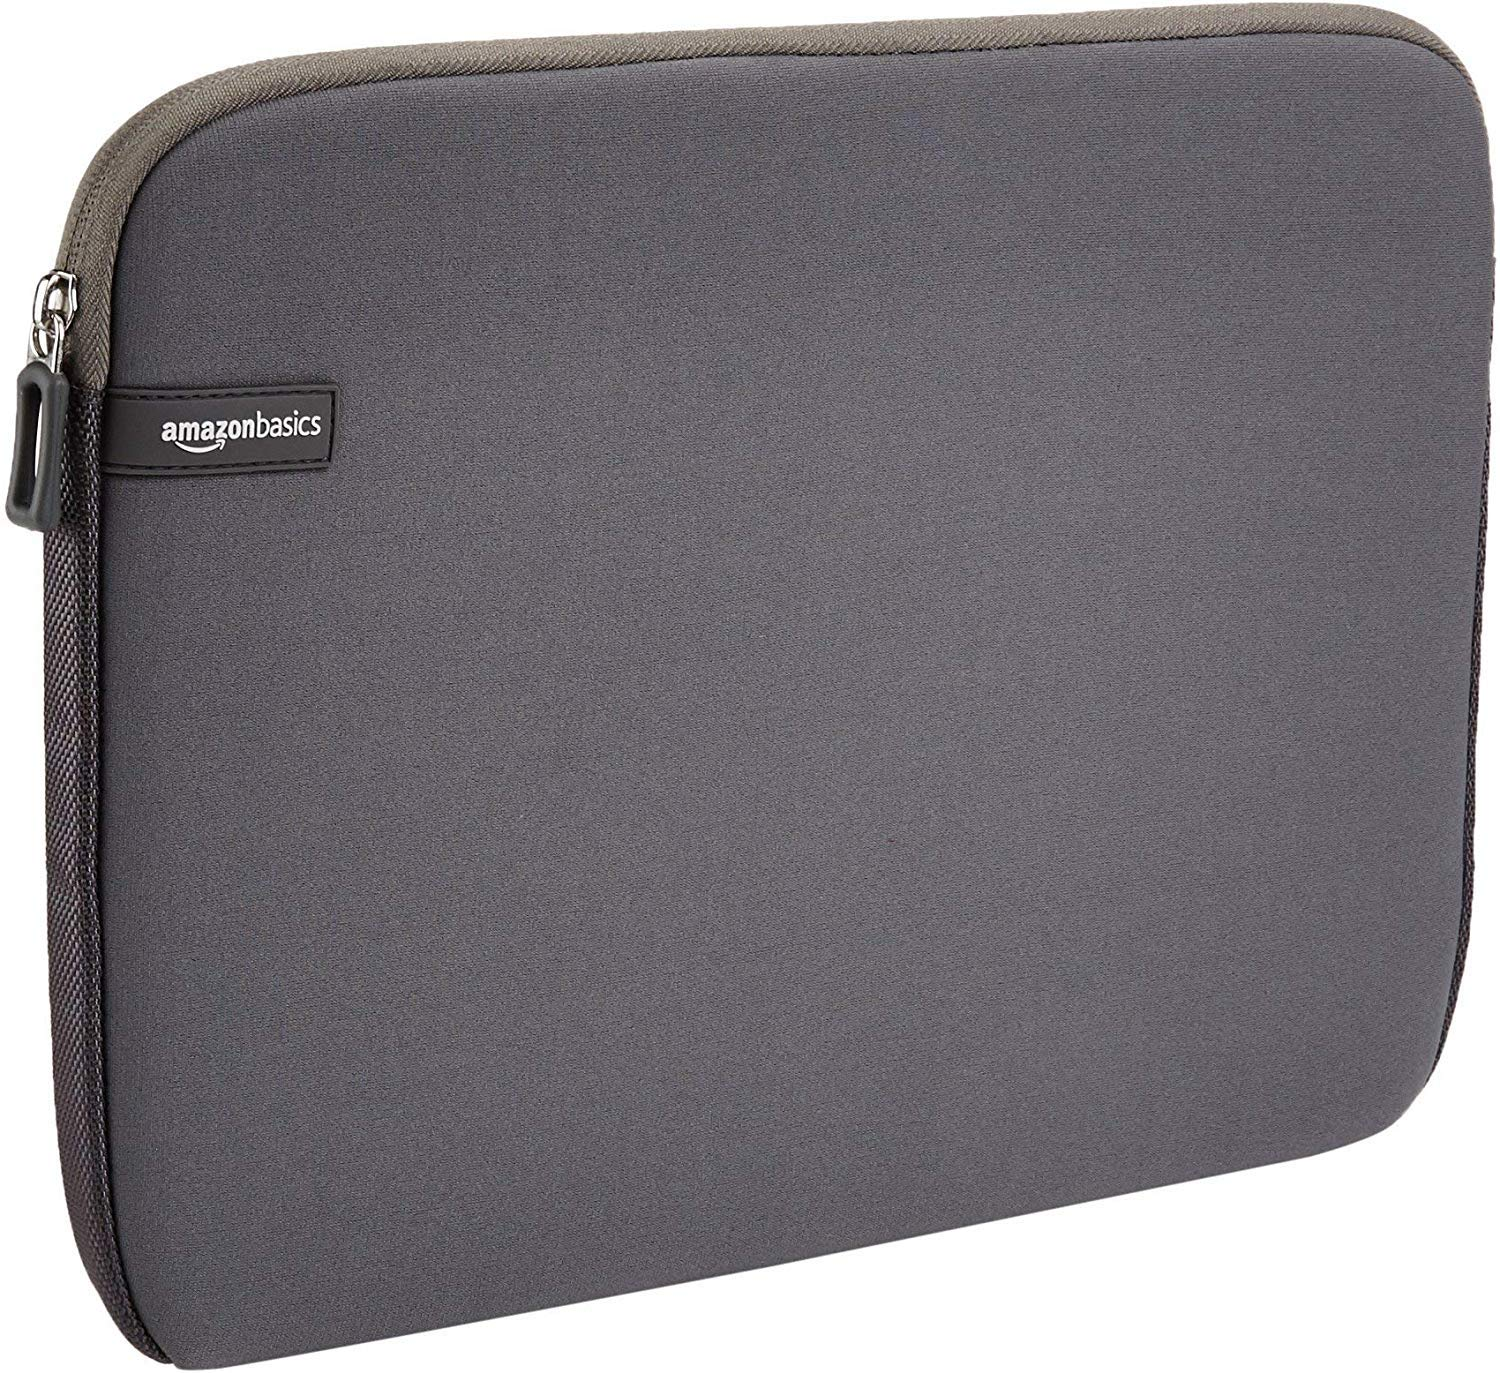 AmazonBasics 13.3-inch Laptop Sleeve (Grey) product image